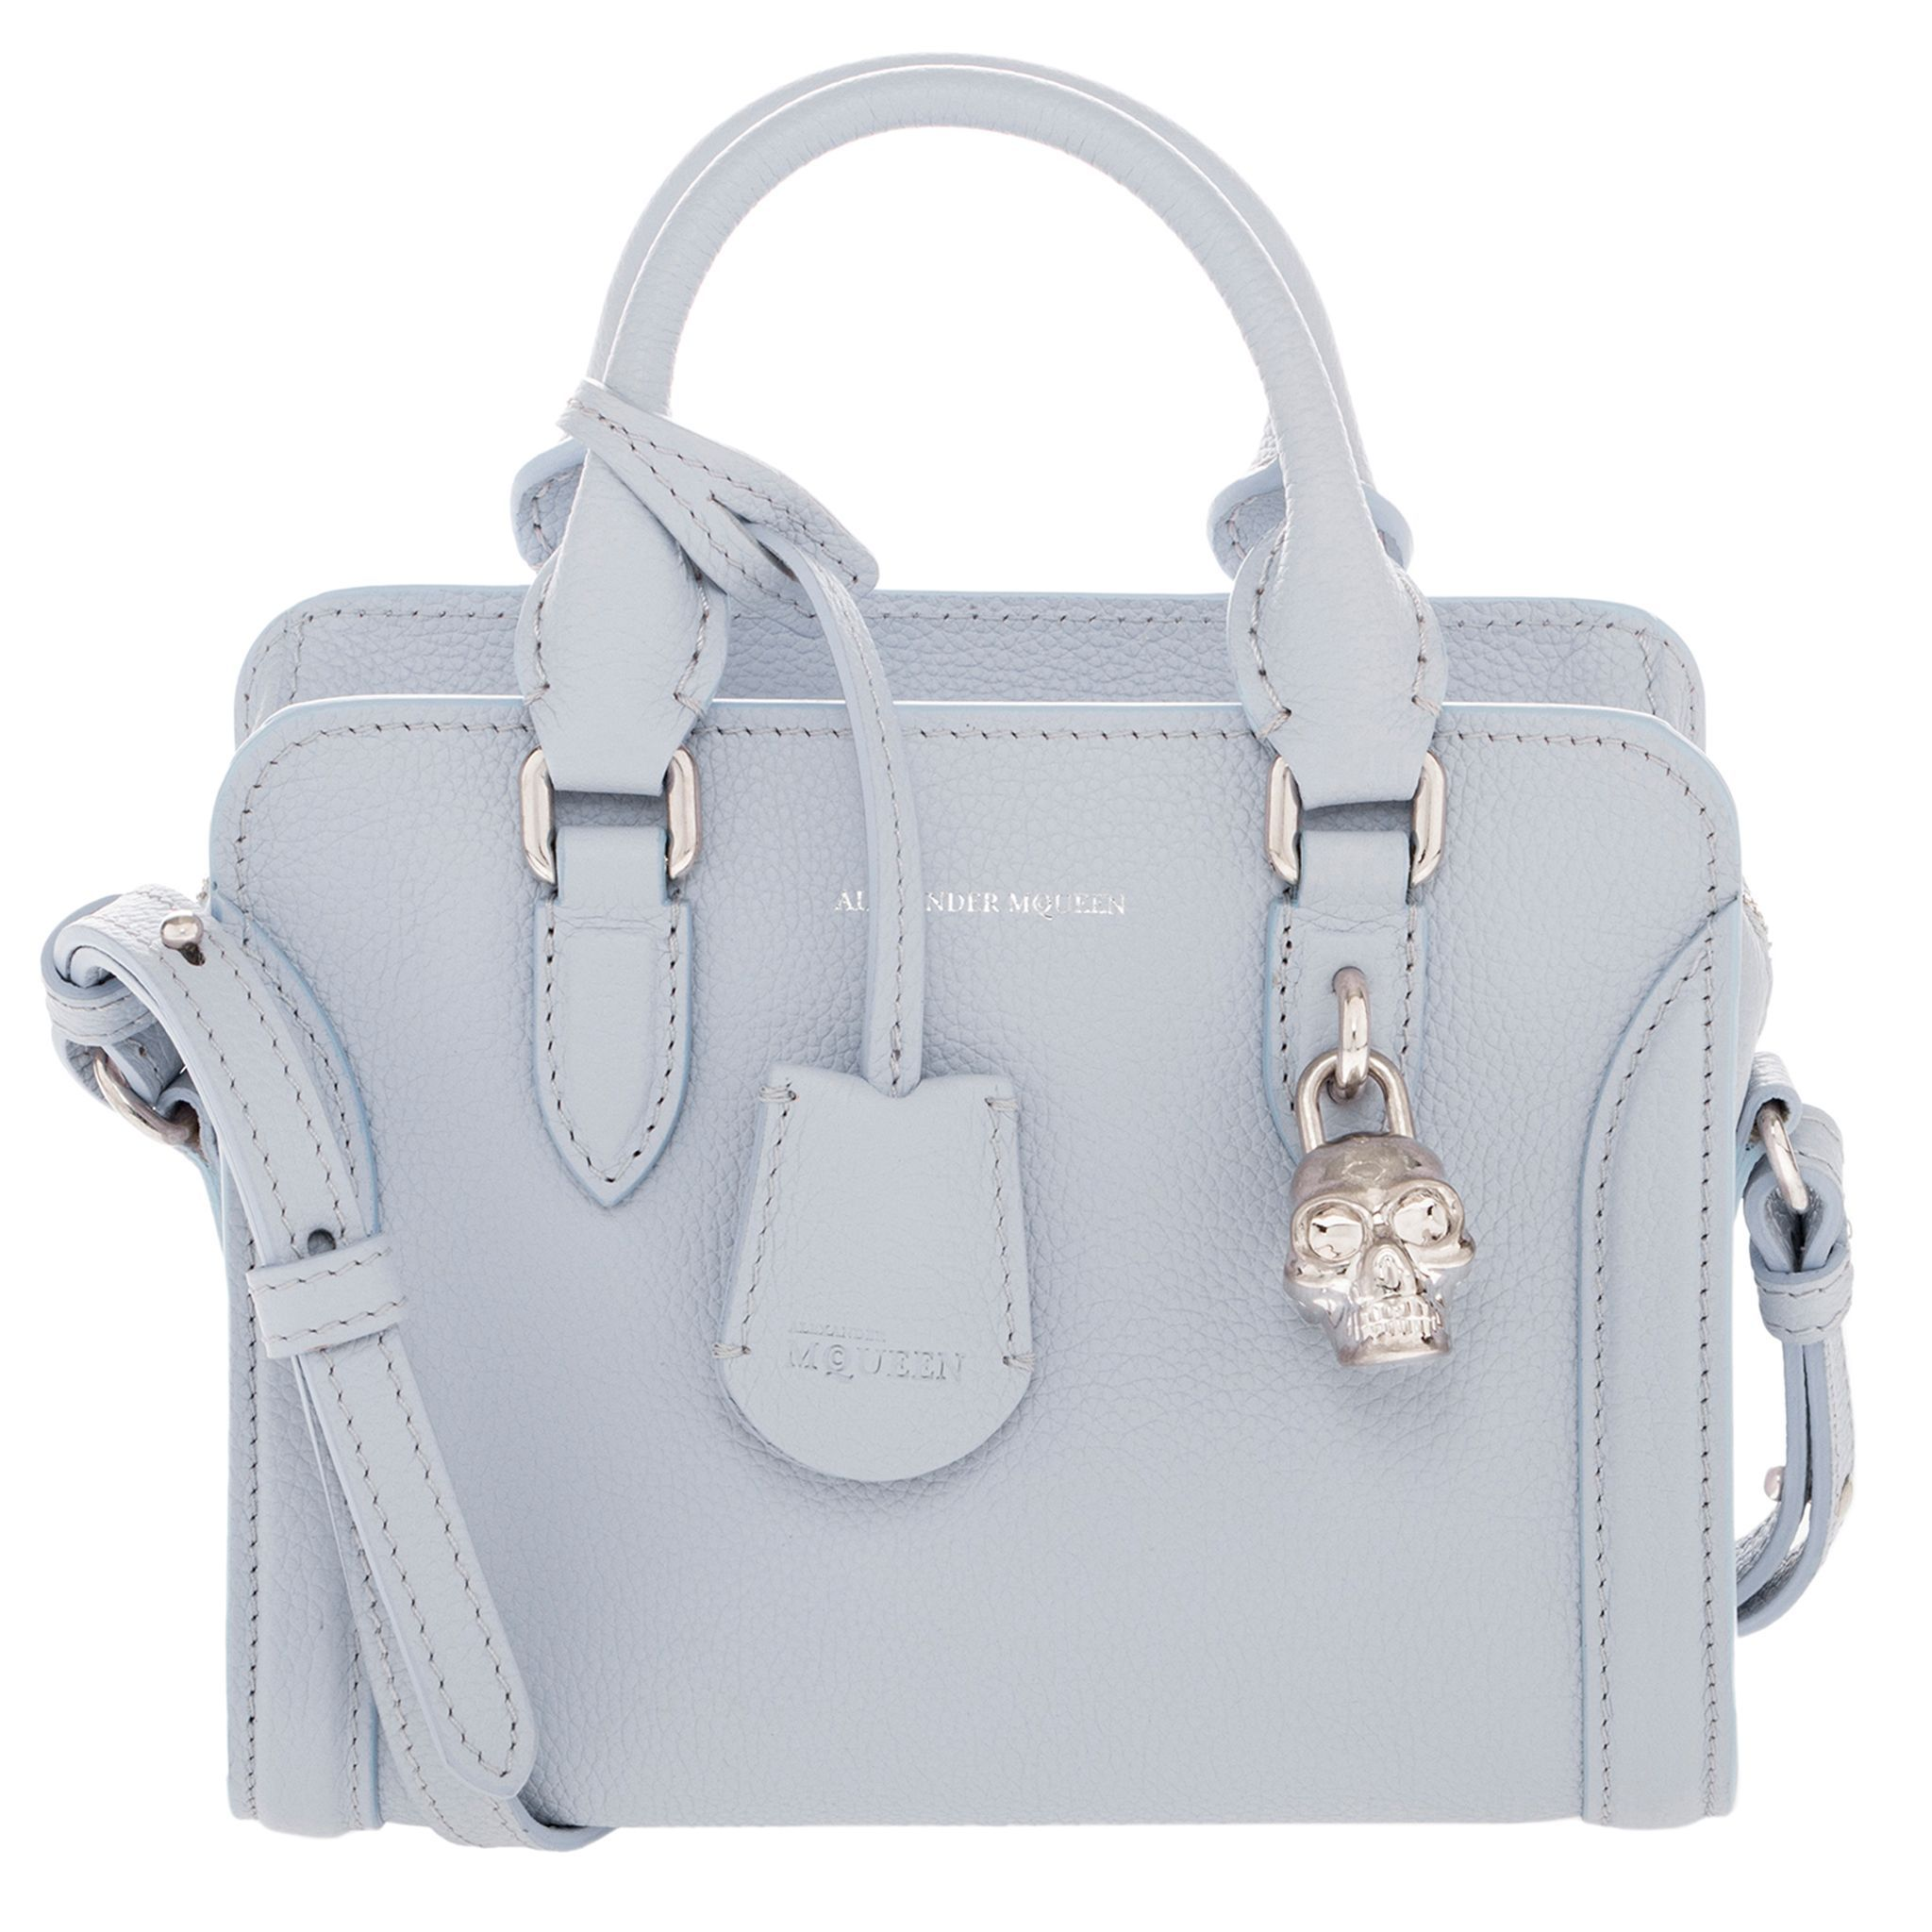 Alexander McQueen Small Mini Padlock Grainy Top Handle Bag